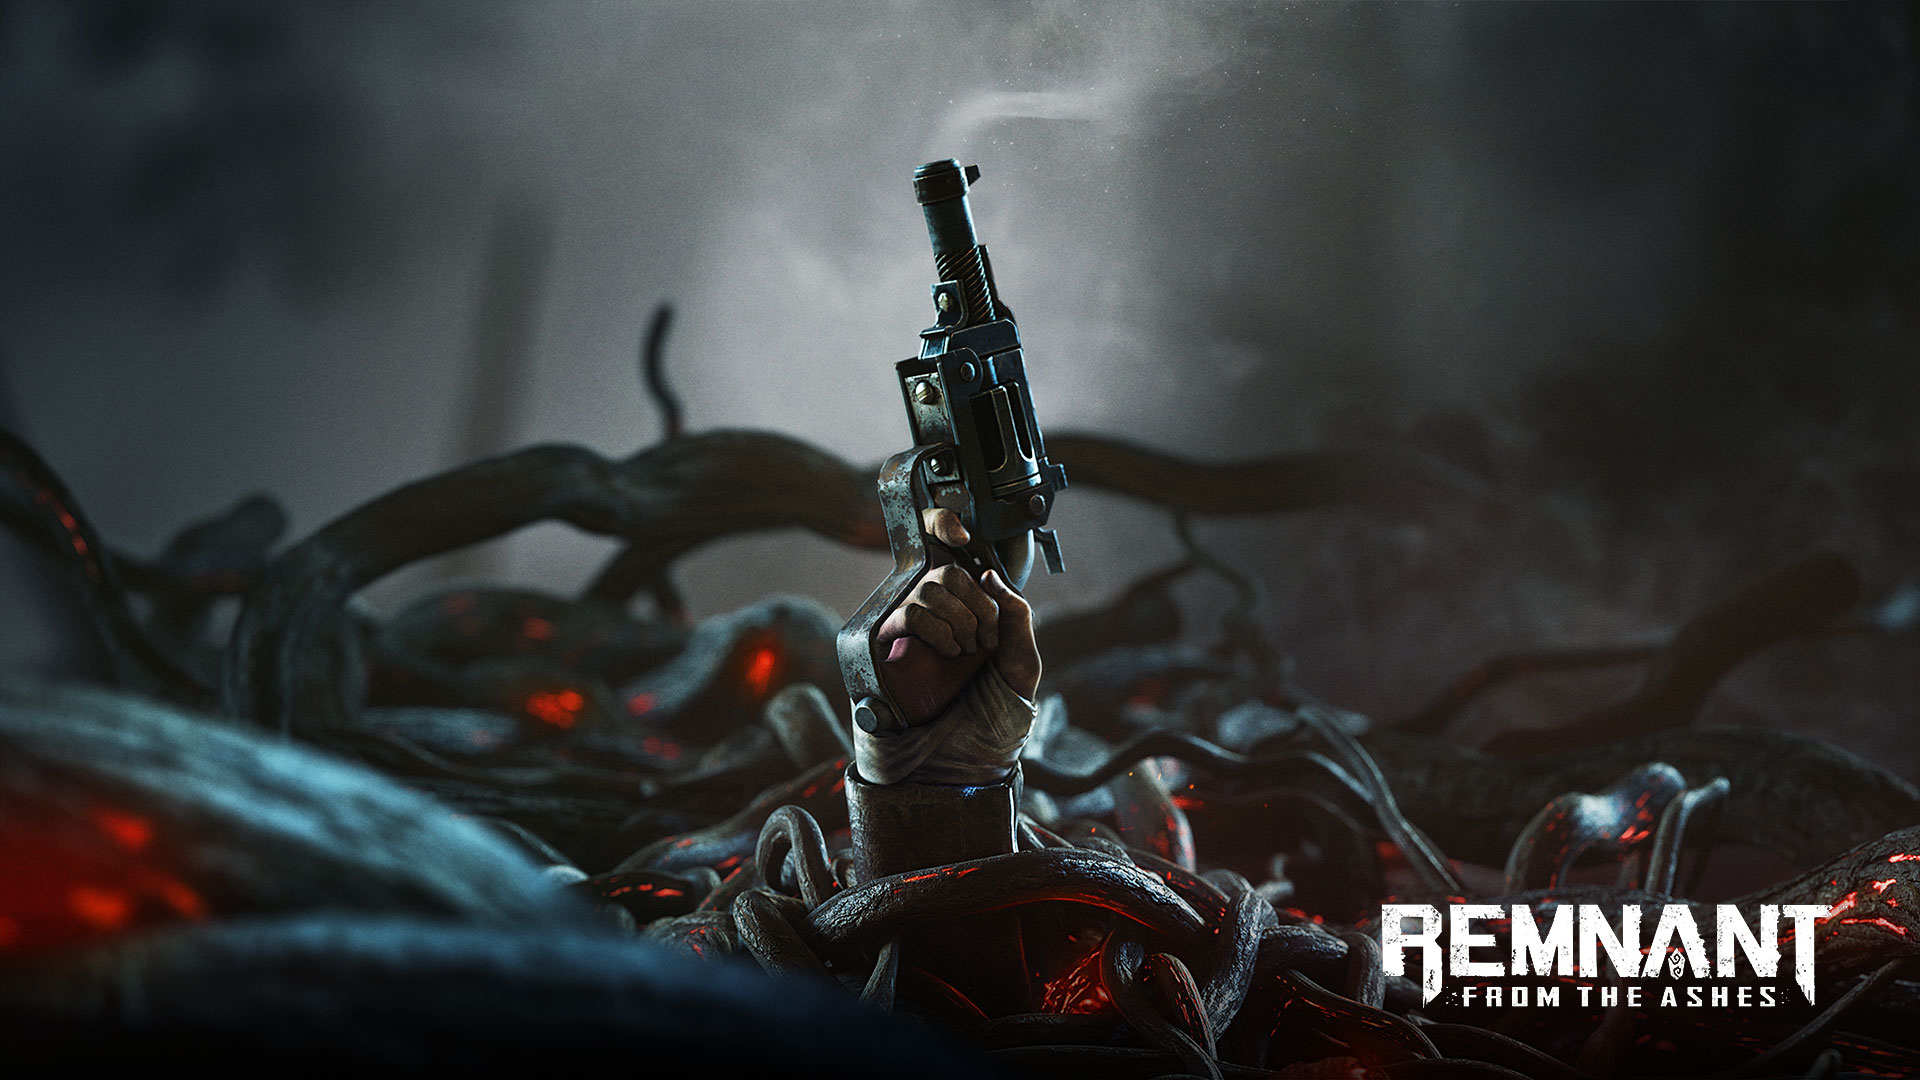 New Remnant Wallpapers Available Remnant From The Ashes